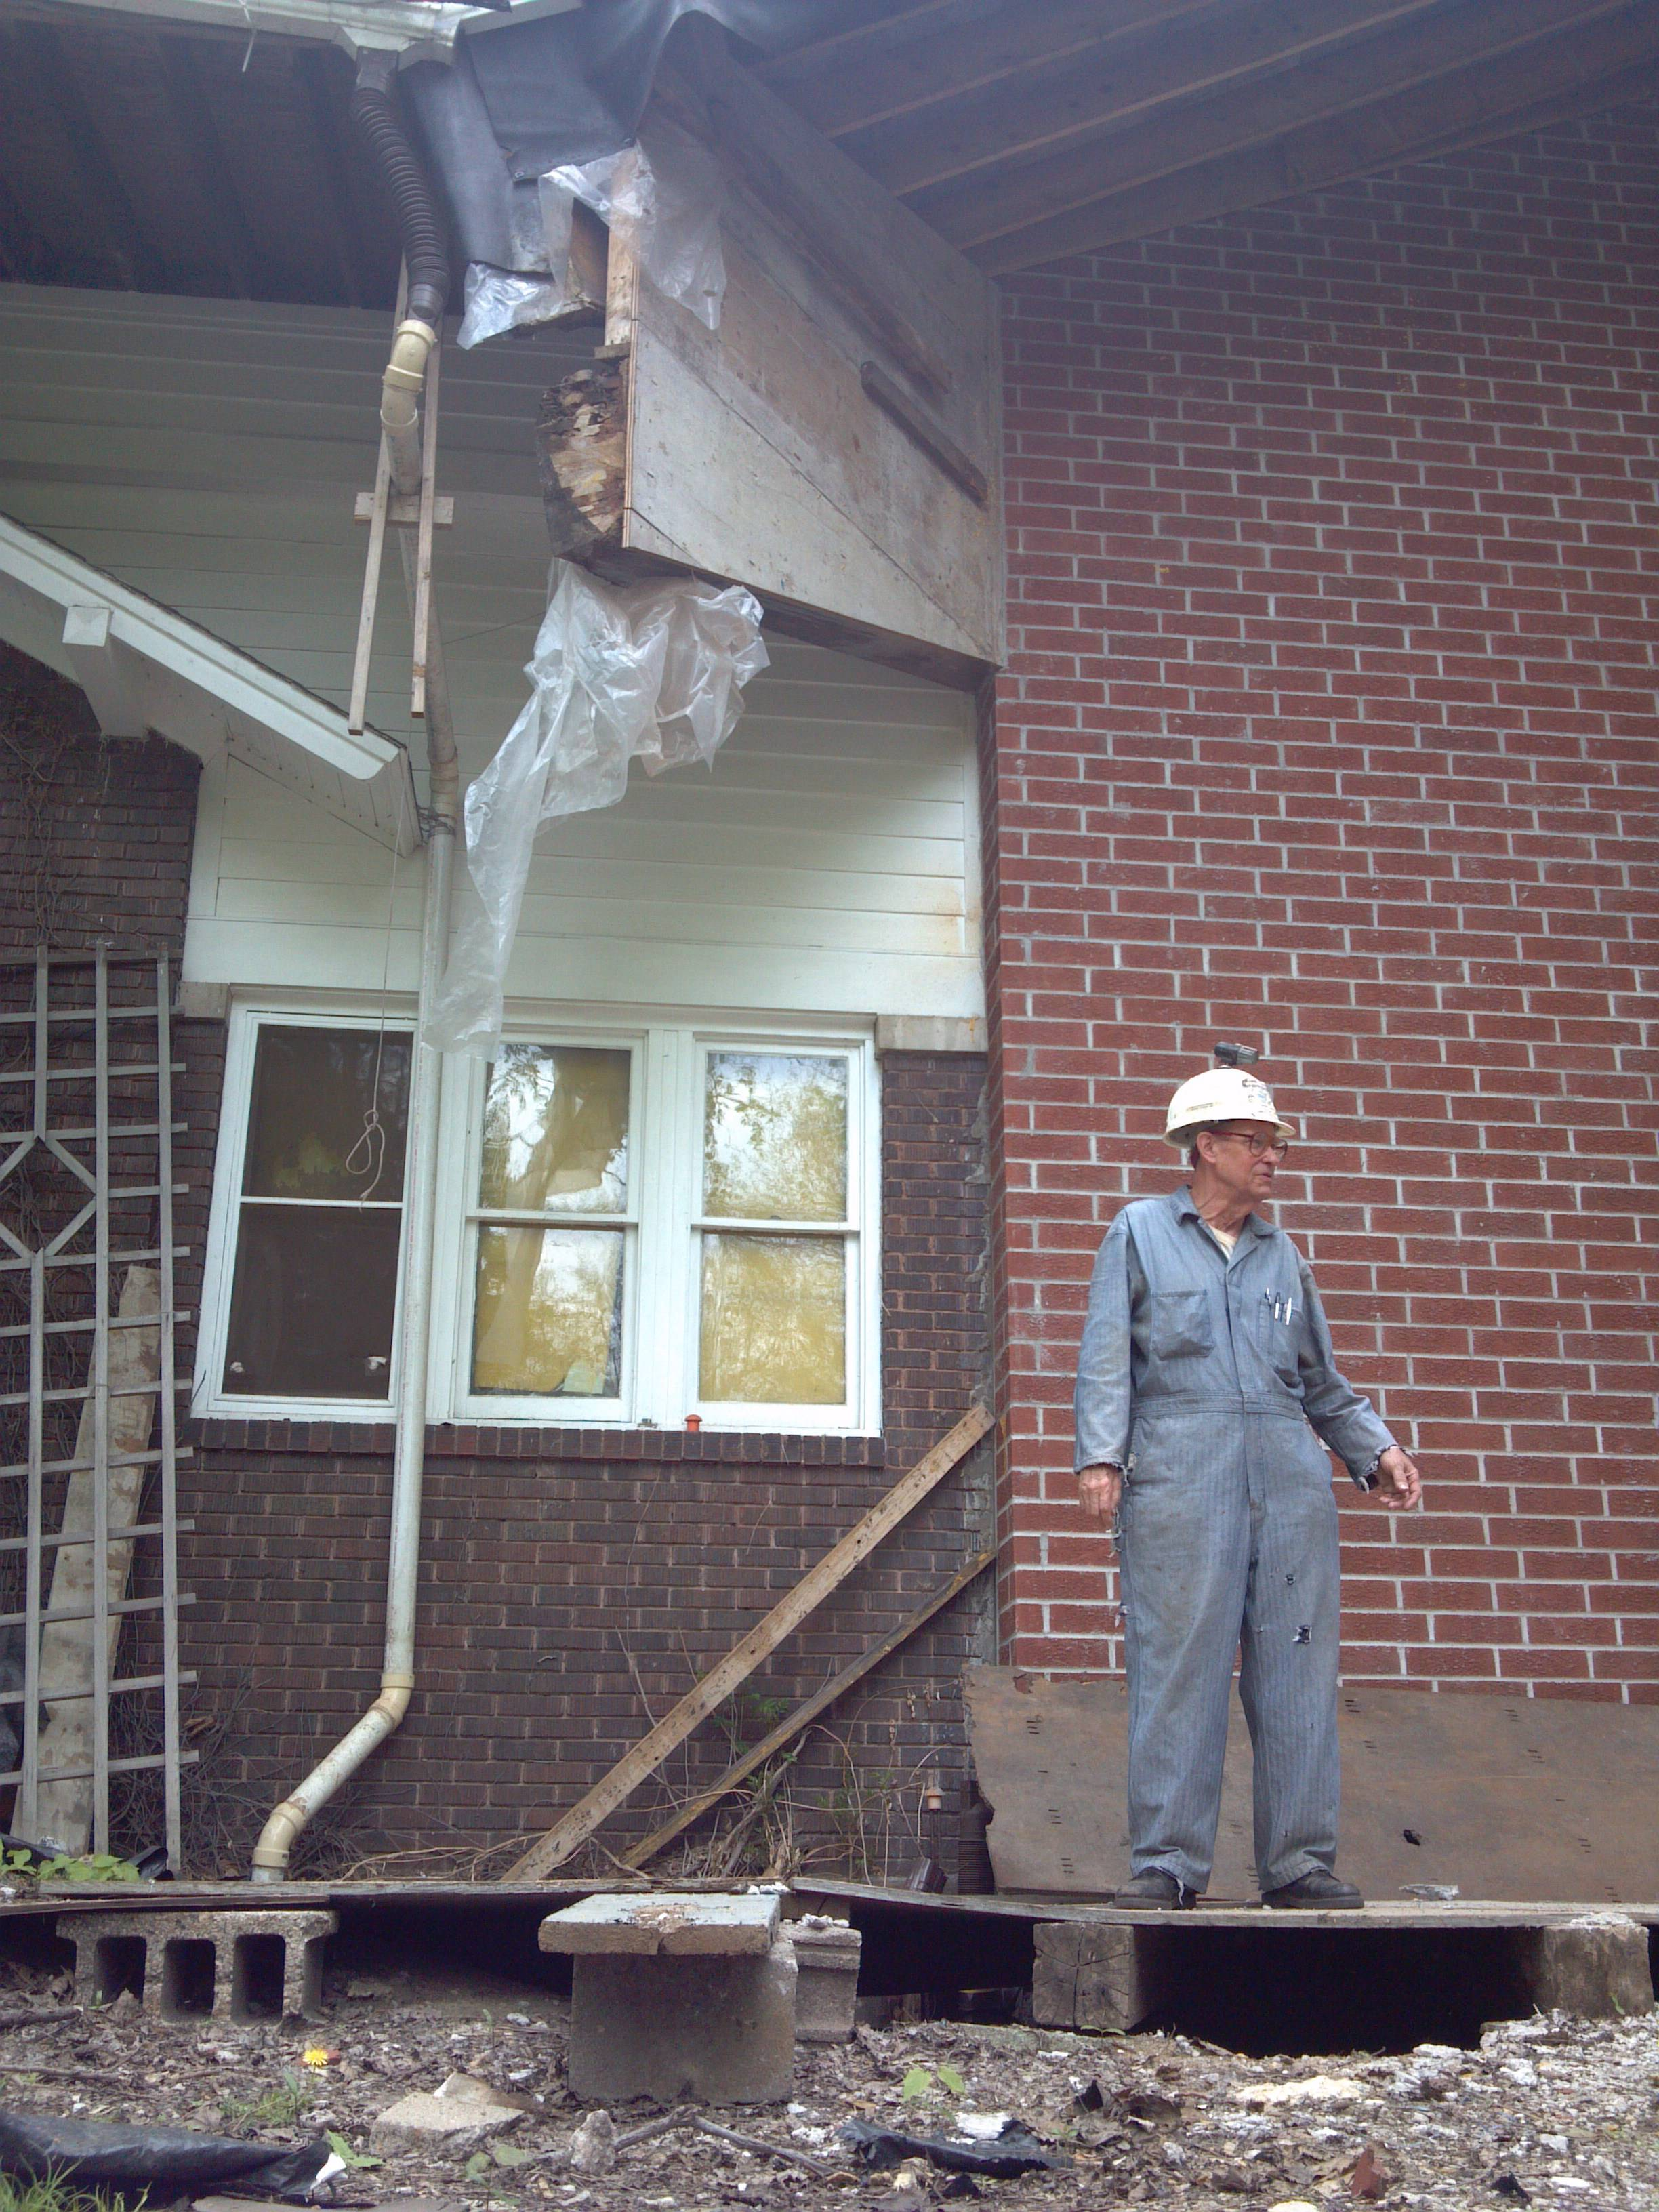 Cliff McIlvaine, who was sued by the city of St. Charles in an effort to get him to finish a project that he first pulled a permit for in 1975, stands in May 2013 on a landing between his original home to the left and new, super-insulated addition on the right, which he said he planned to turn into a museum for his and his father's inventions, along with city memorabilia.